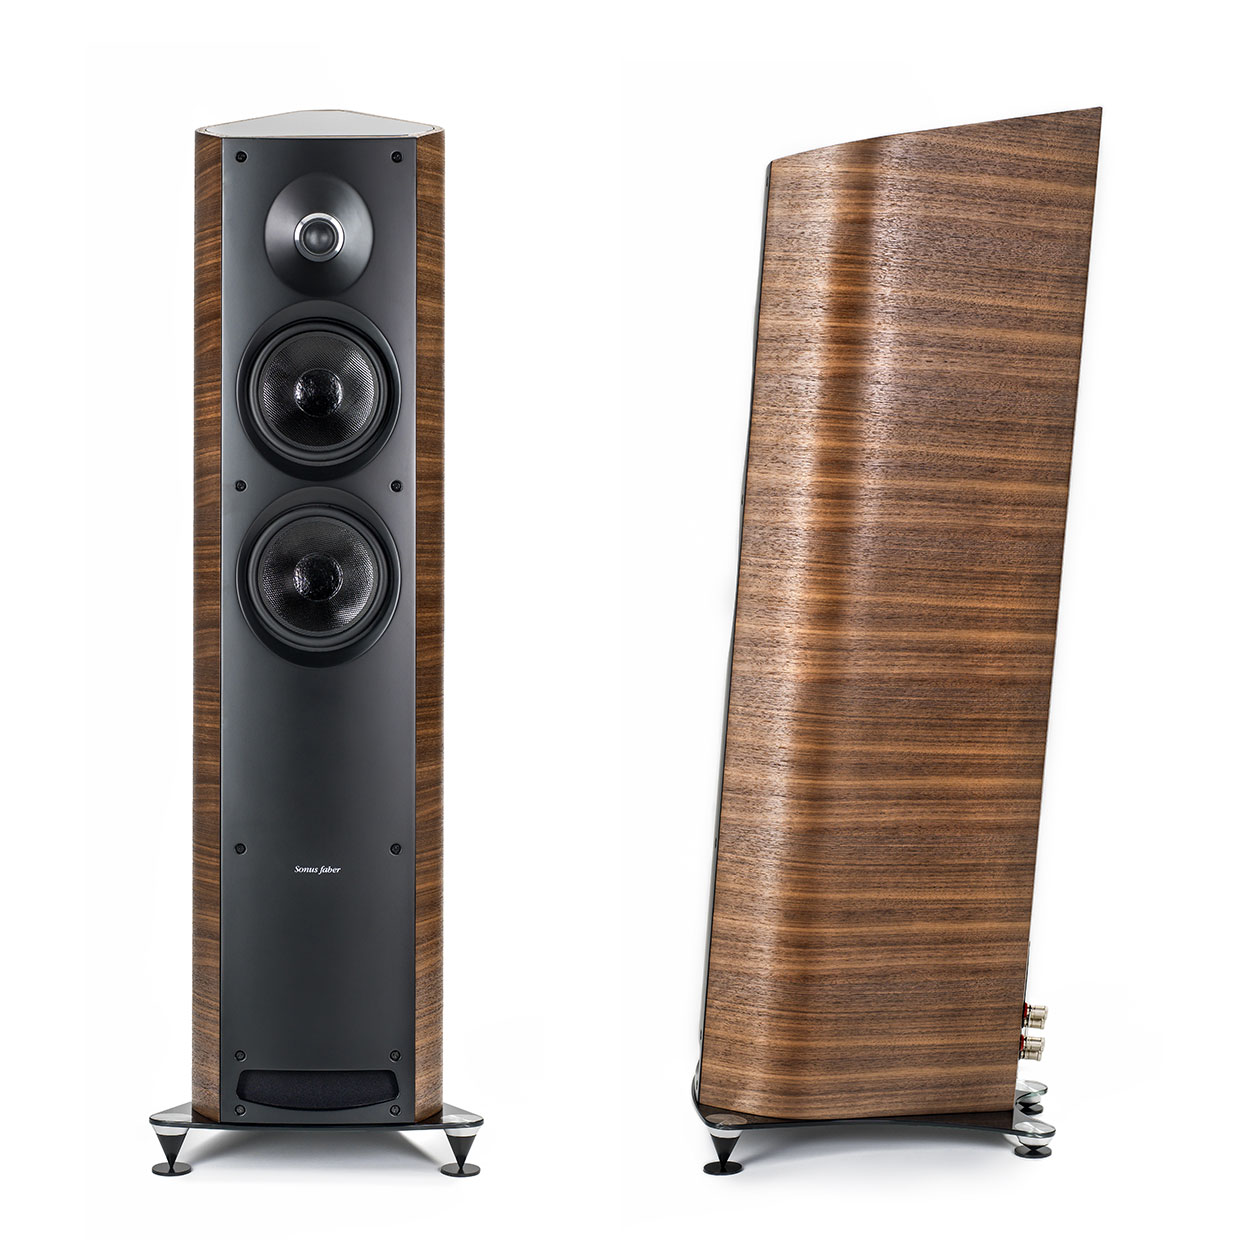 The world's most powerful acoustic loudspeaker systems